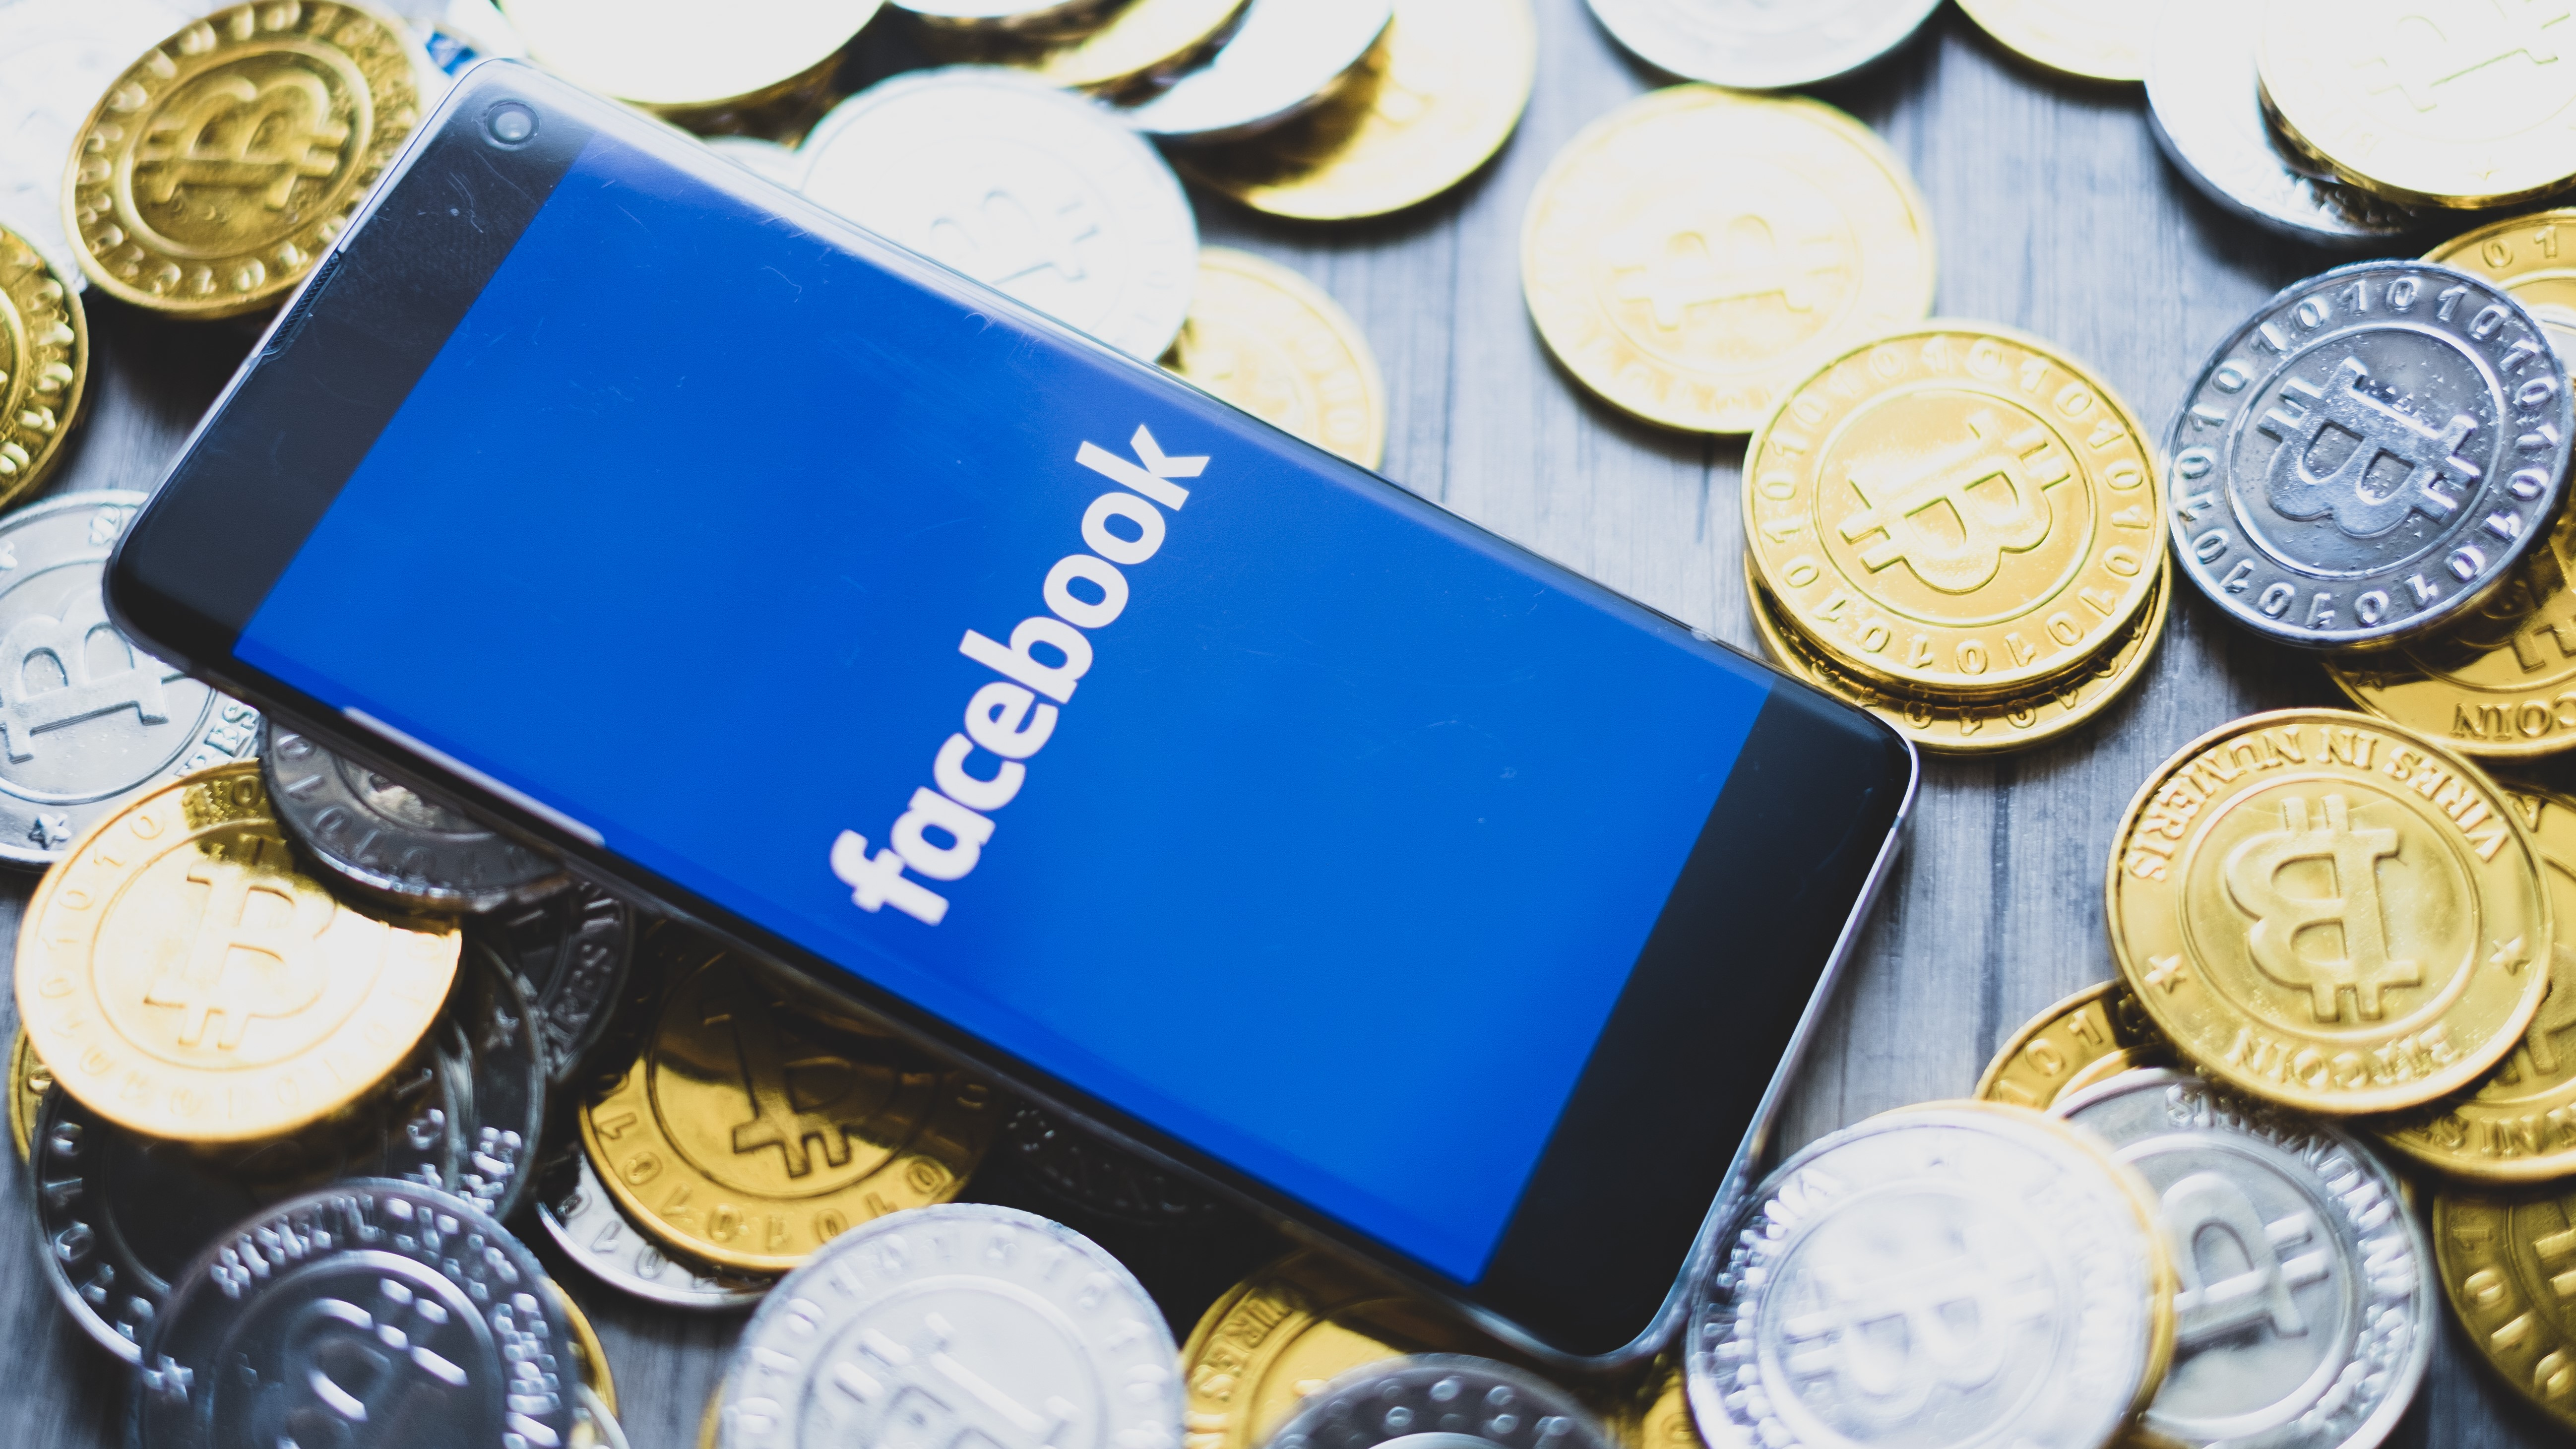 Facebook will now pay for your voice recordings – here's how to cash in